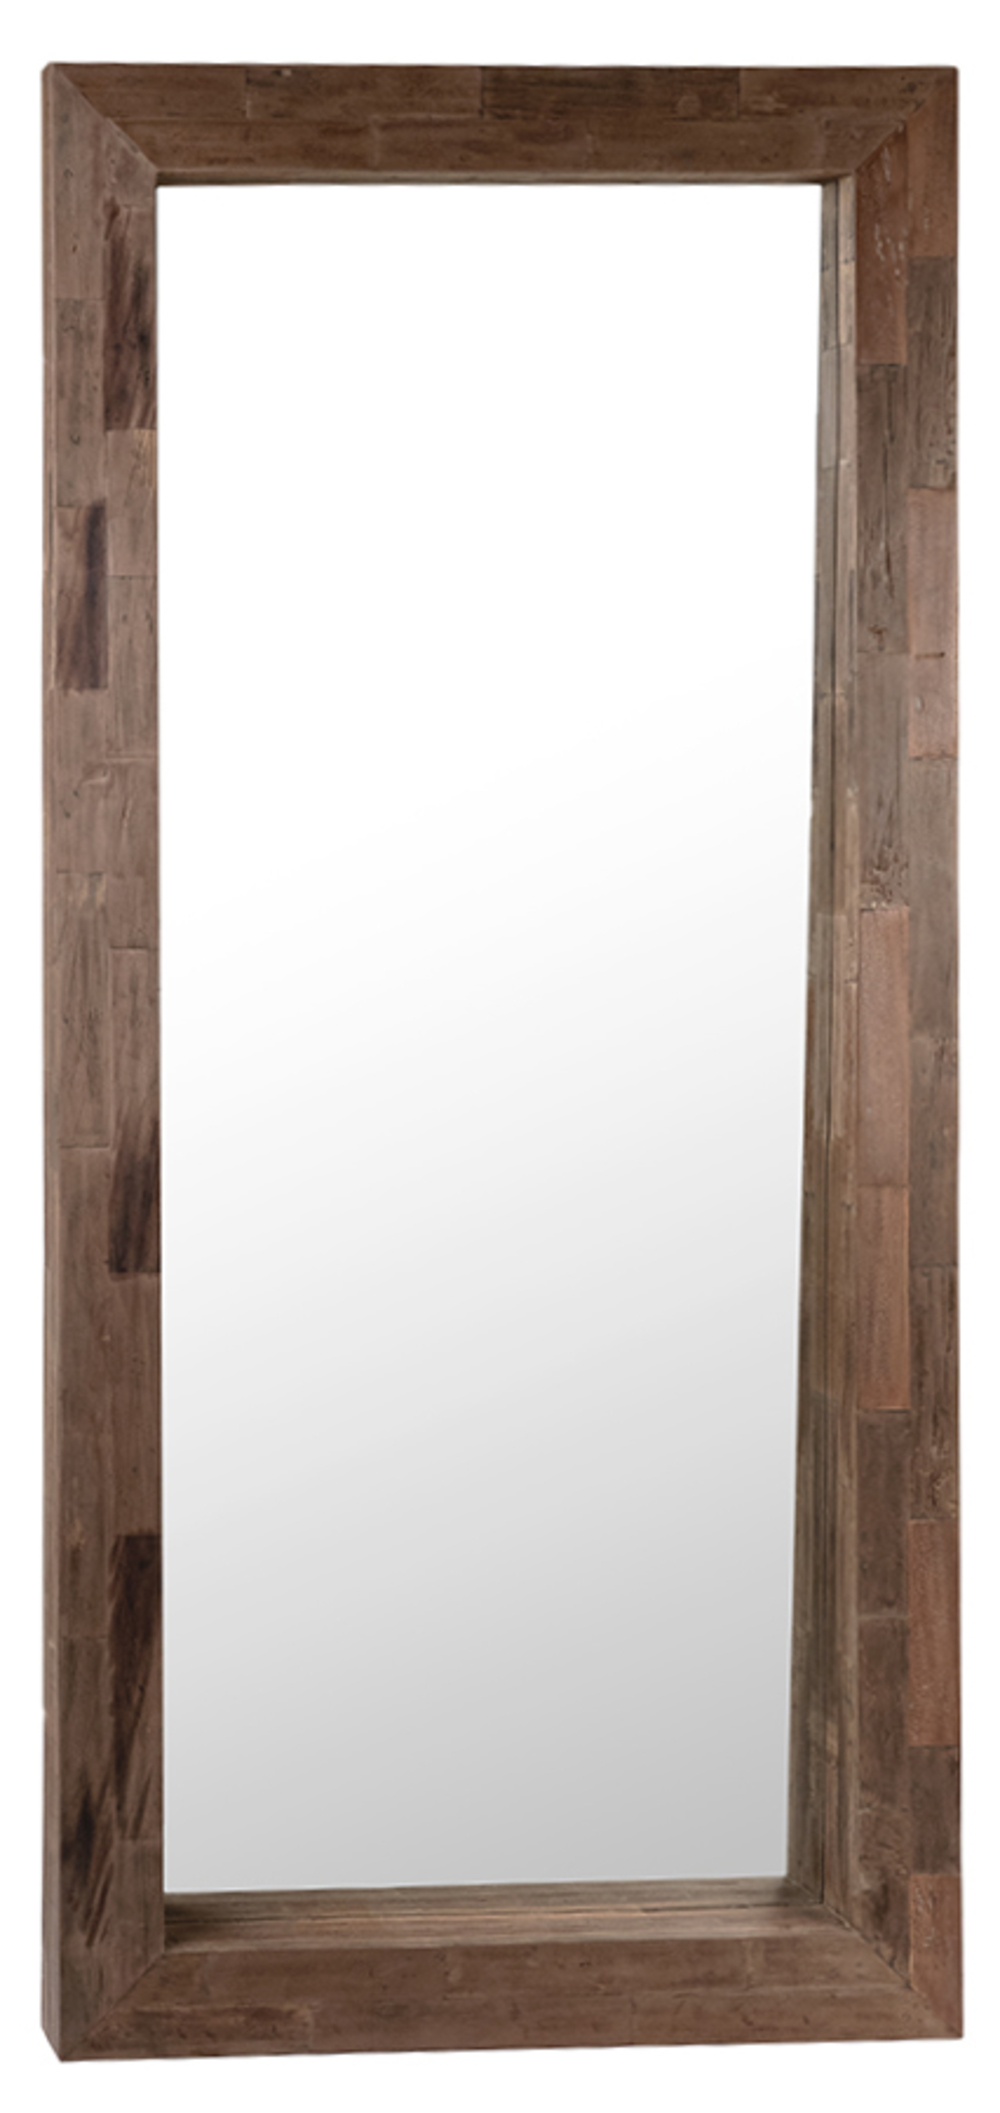 Dovetail Furniture - Taylor Standing Mirror